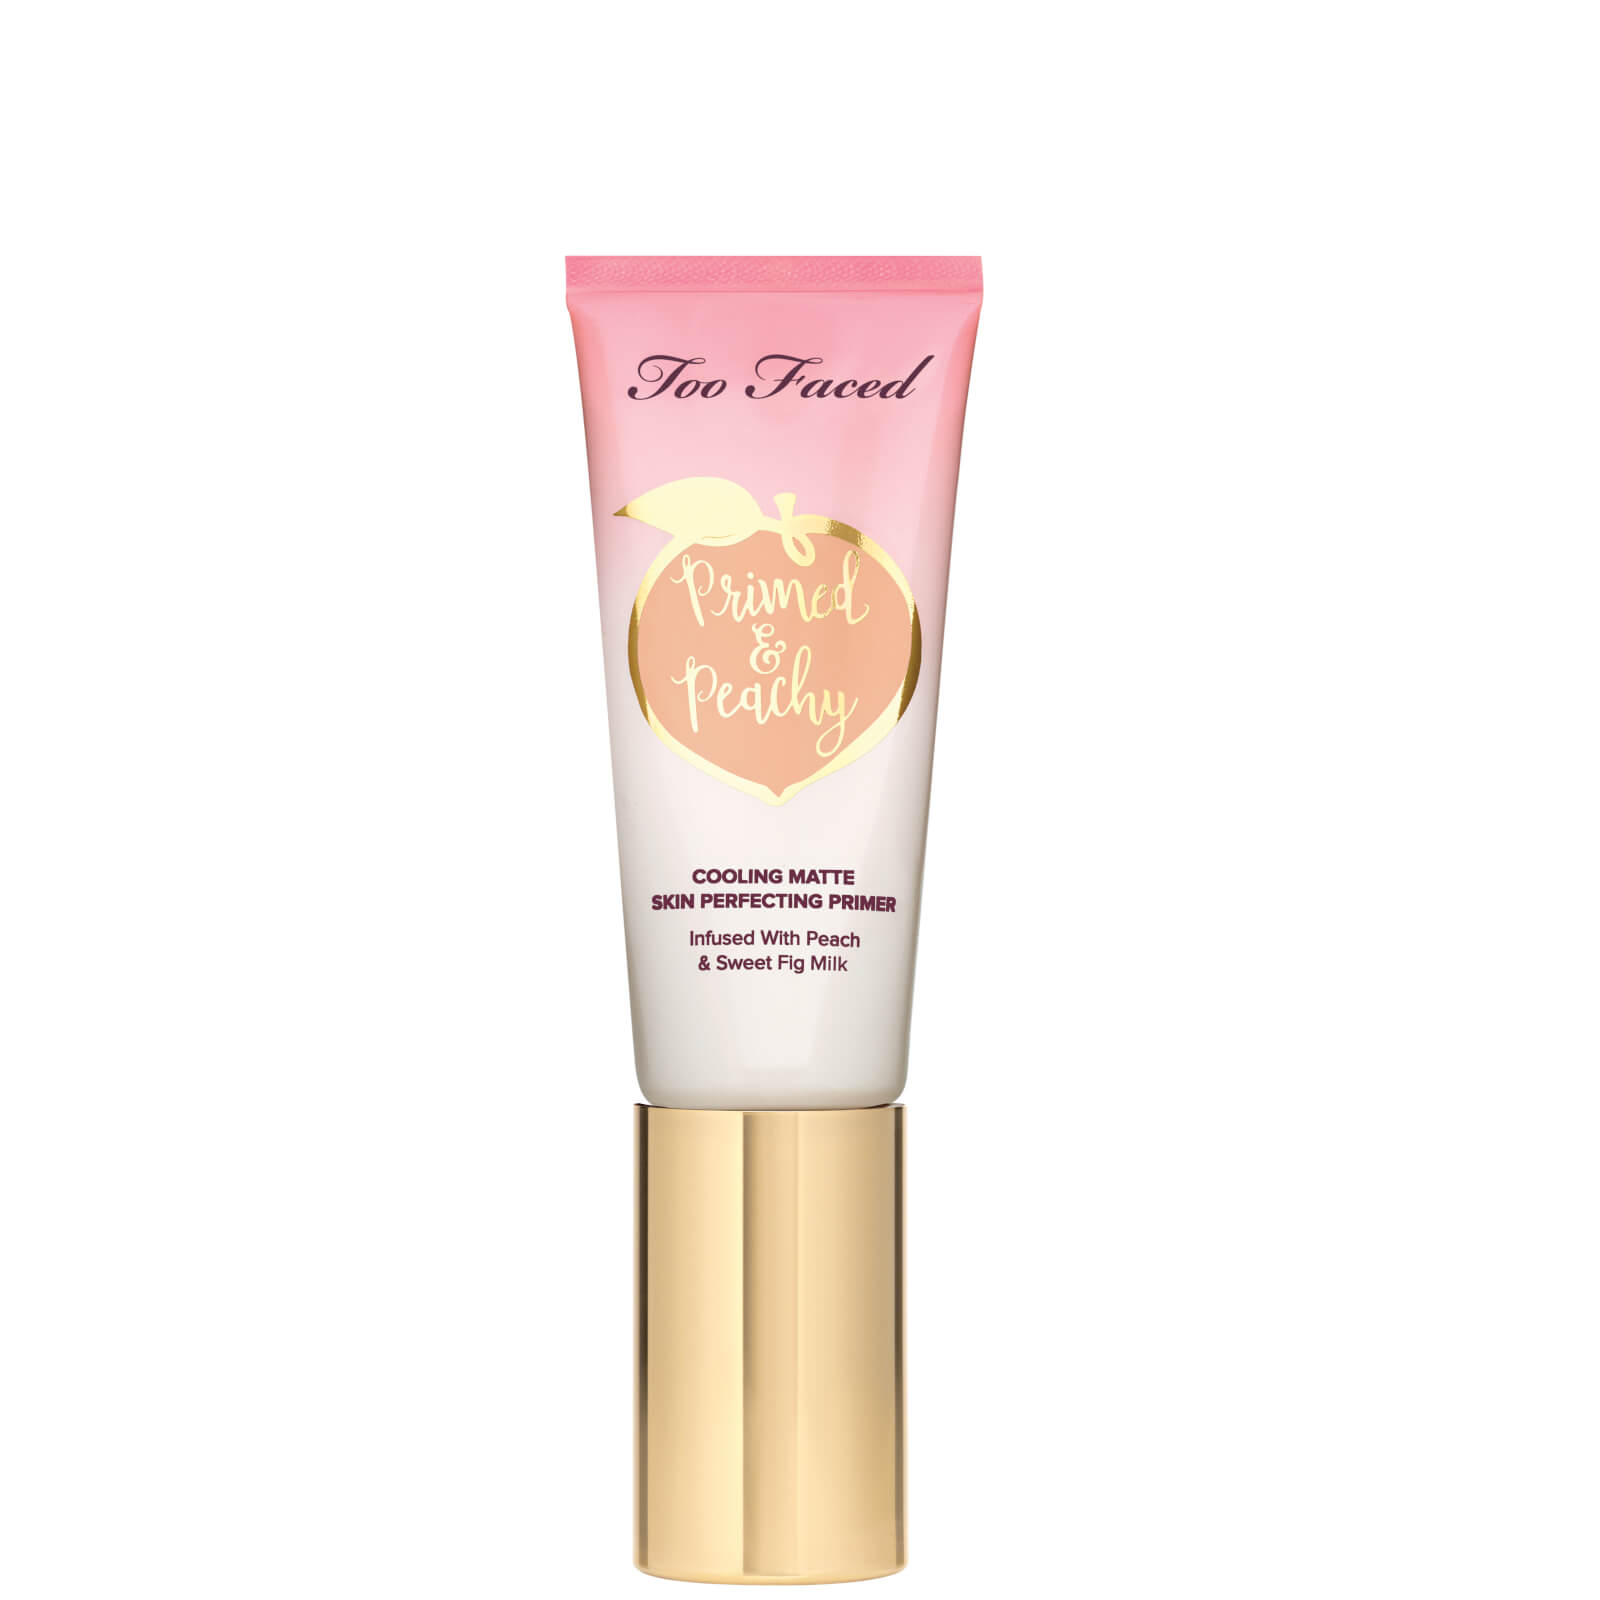 Too Faced Primed and Peachy Matte Perfecting Doll Sized Primer 20ml